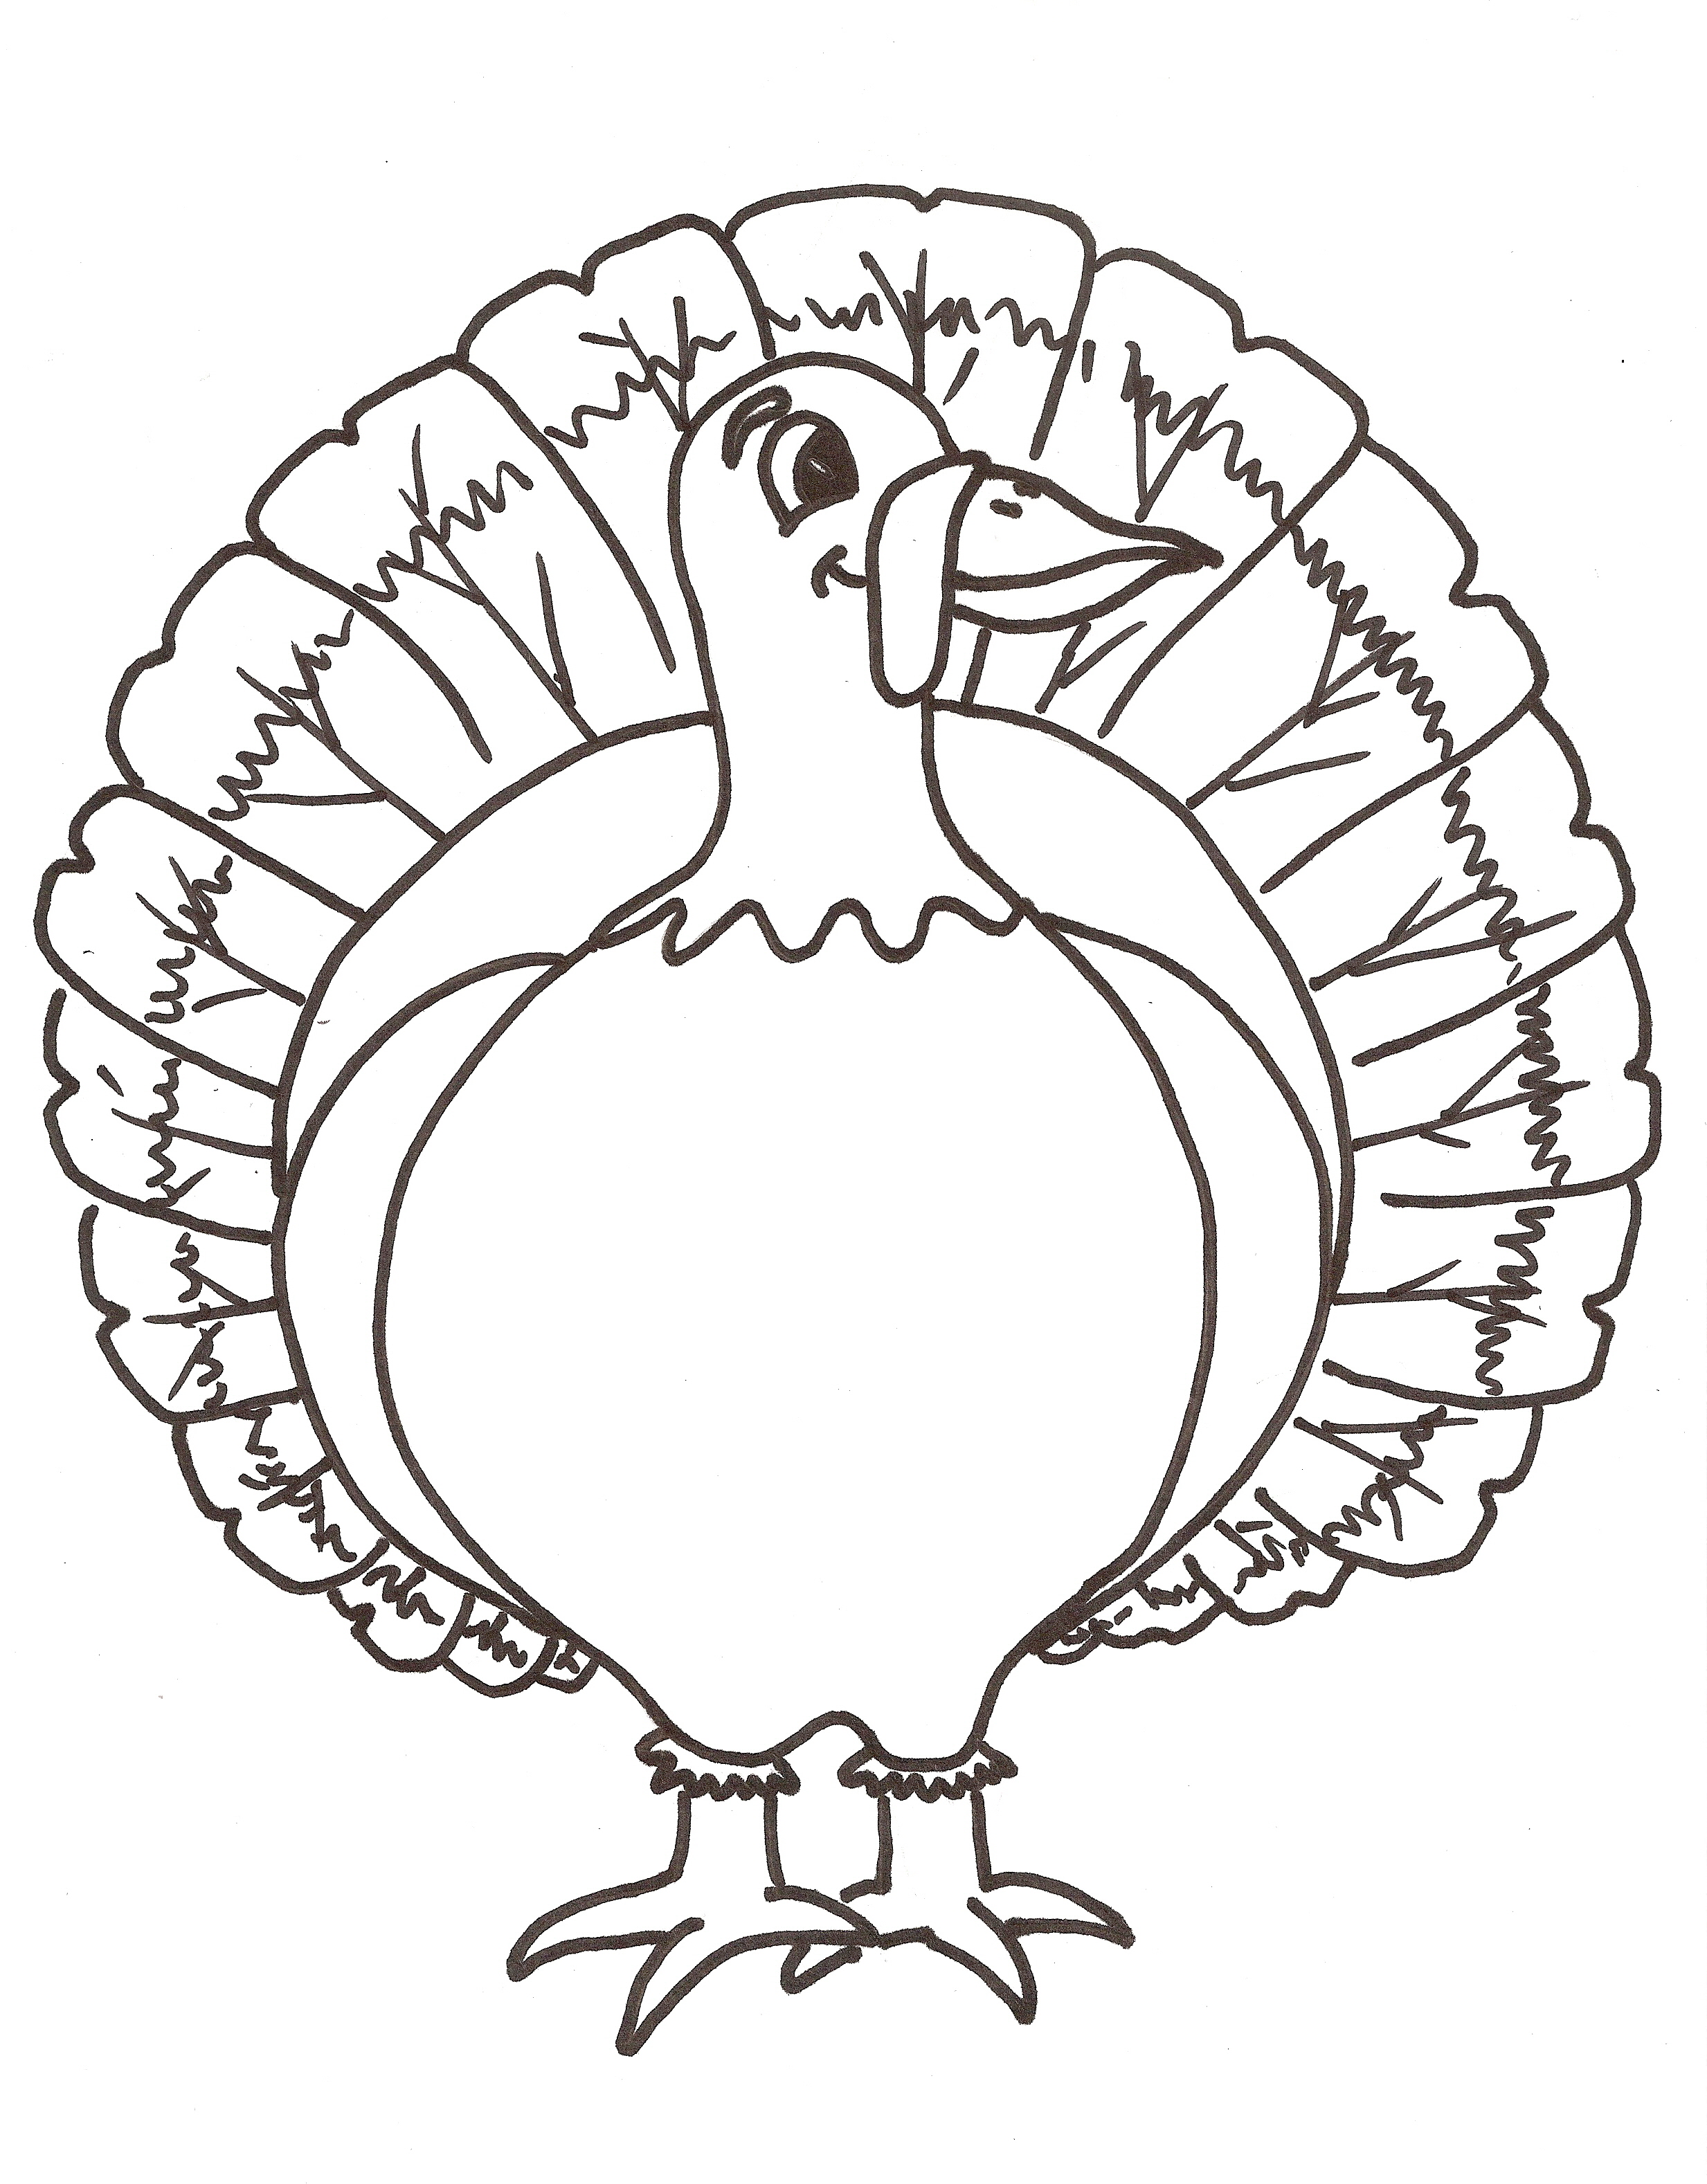 Turkey Outline Free Download Best Turkey Outline On Clipartmag